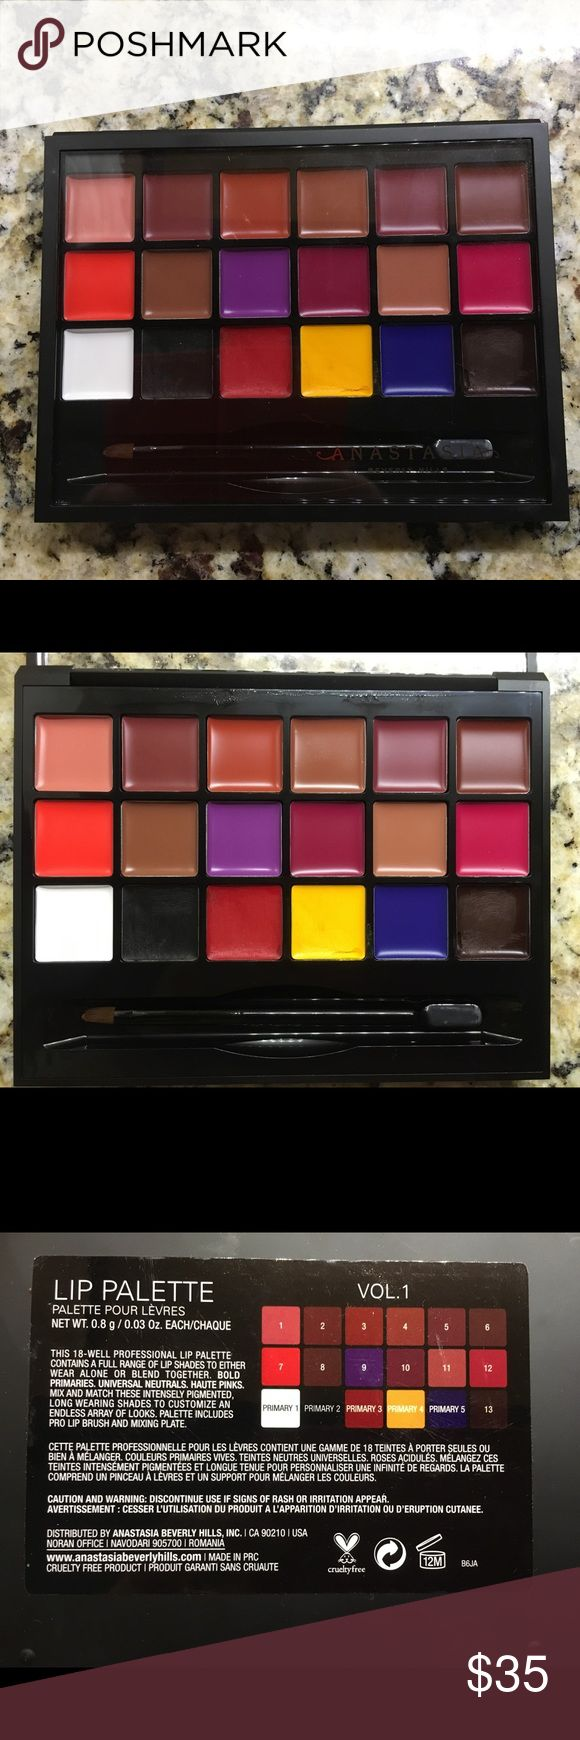 Authentic Anastasia Beverly Hills lip pallet This 18-well professional Lip Palette contains a collection of lip shades ranging from primaries and neutrals to bold brights. Shades feature rich, intense pigment with a long-wearing, matte finish. Wear alone or mixed together for an endless array of looks. Only the black, red, yellow and brown were nearly used. In excellent condition. Anastasia Beverly Hills Makeup Lipstick